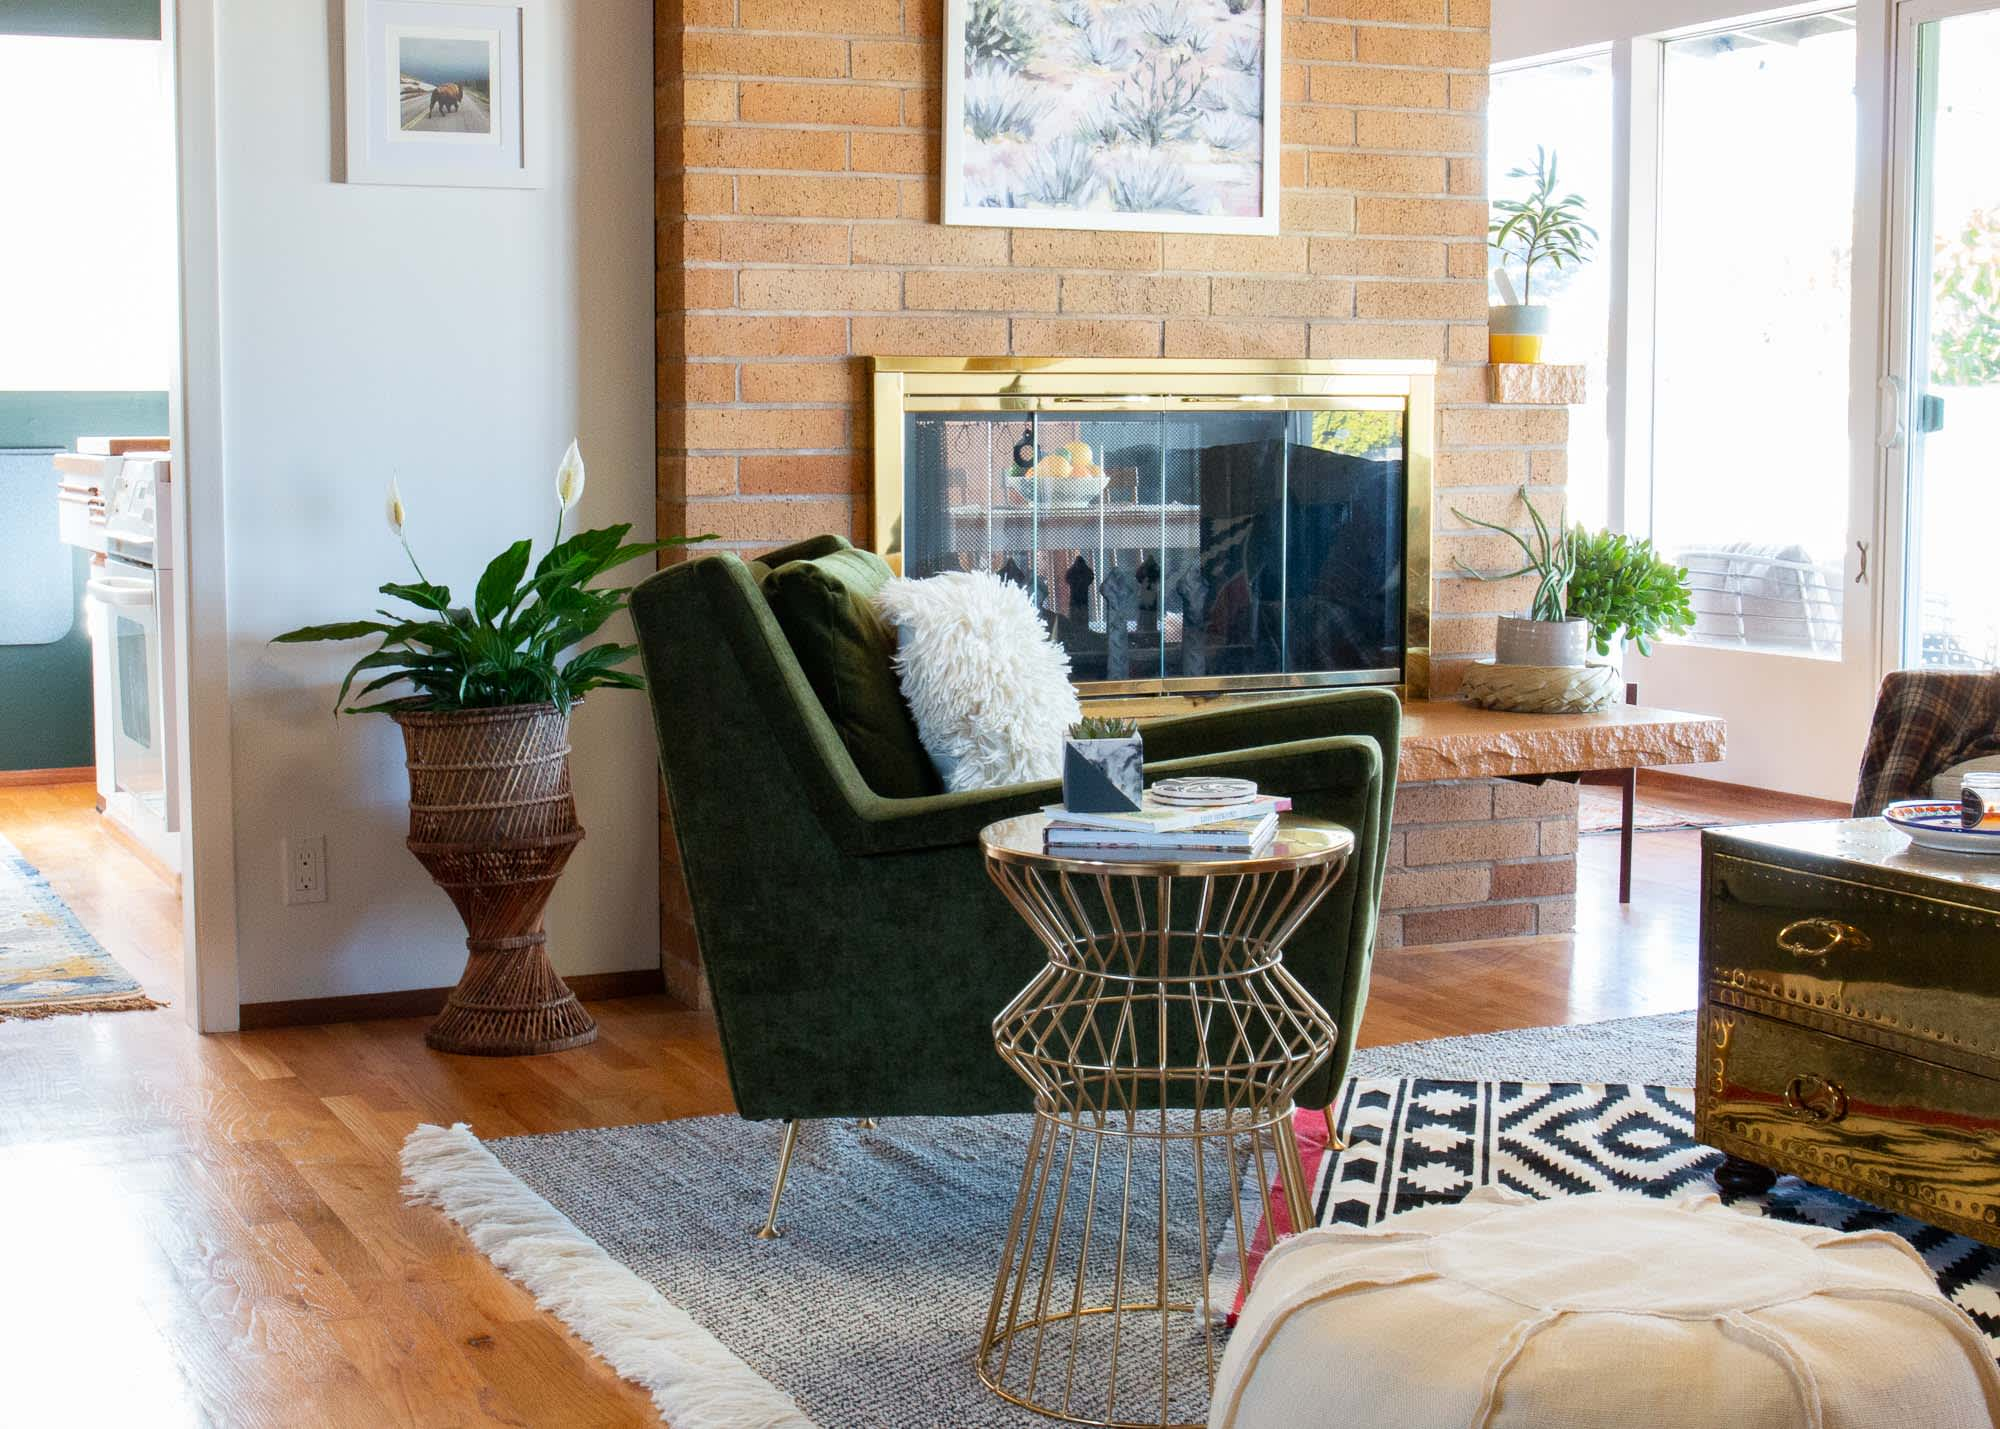 A Seattle Home's Dining Room Has a Great Green Accent Wall: gallery image 4